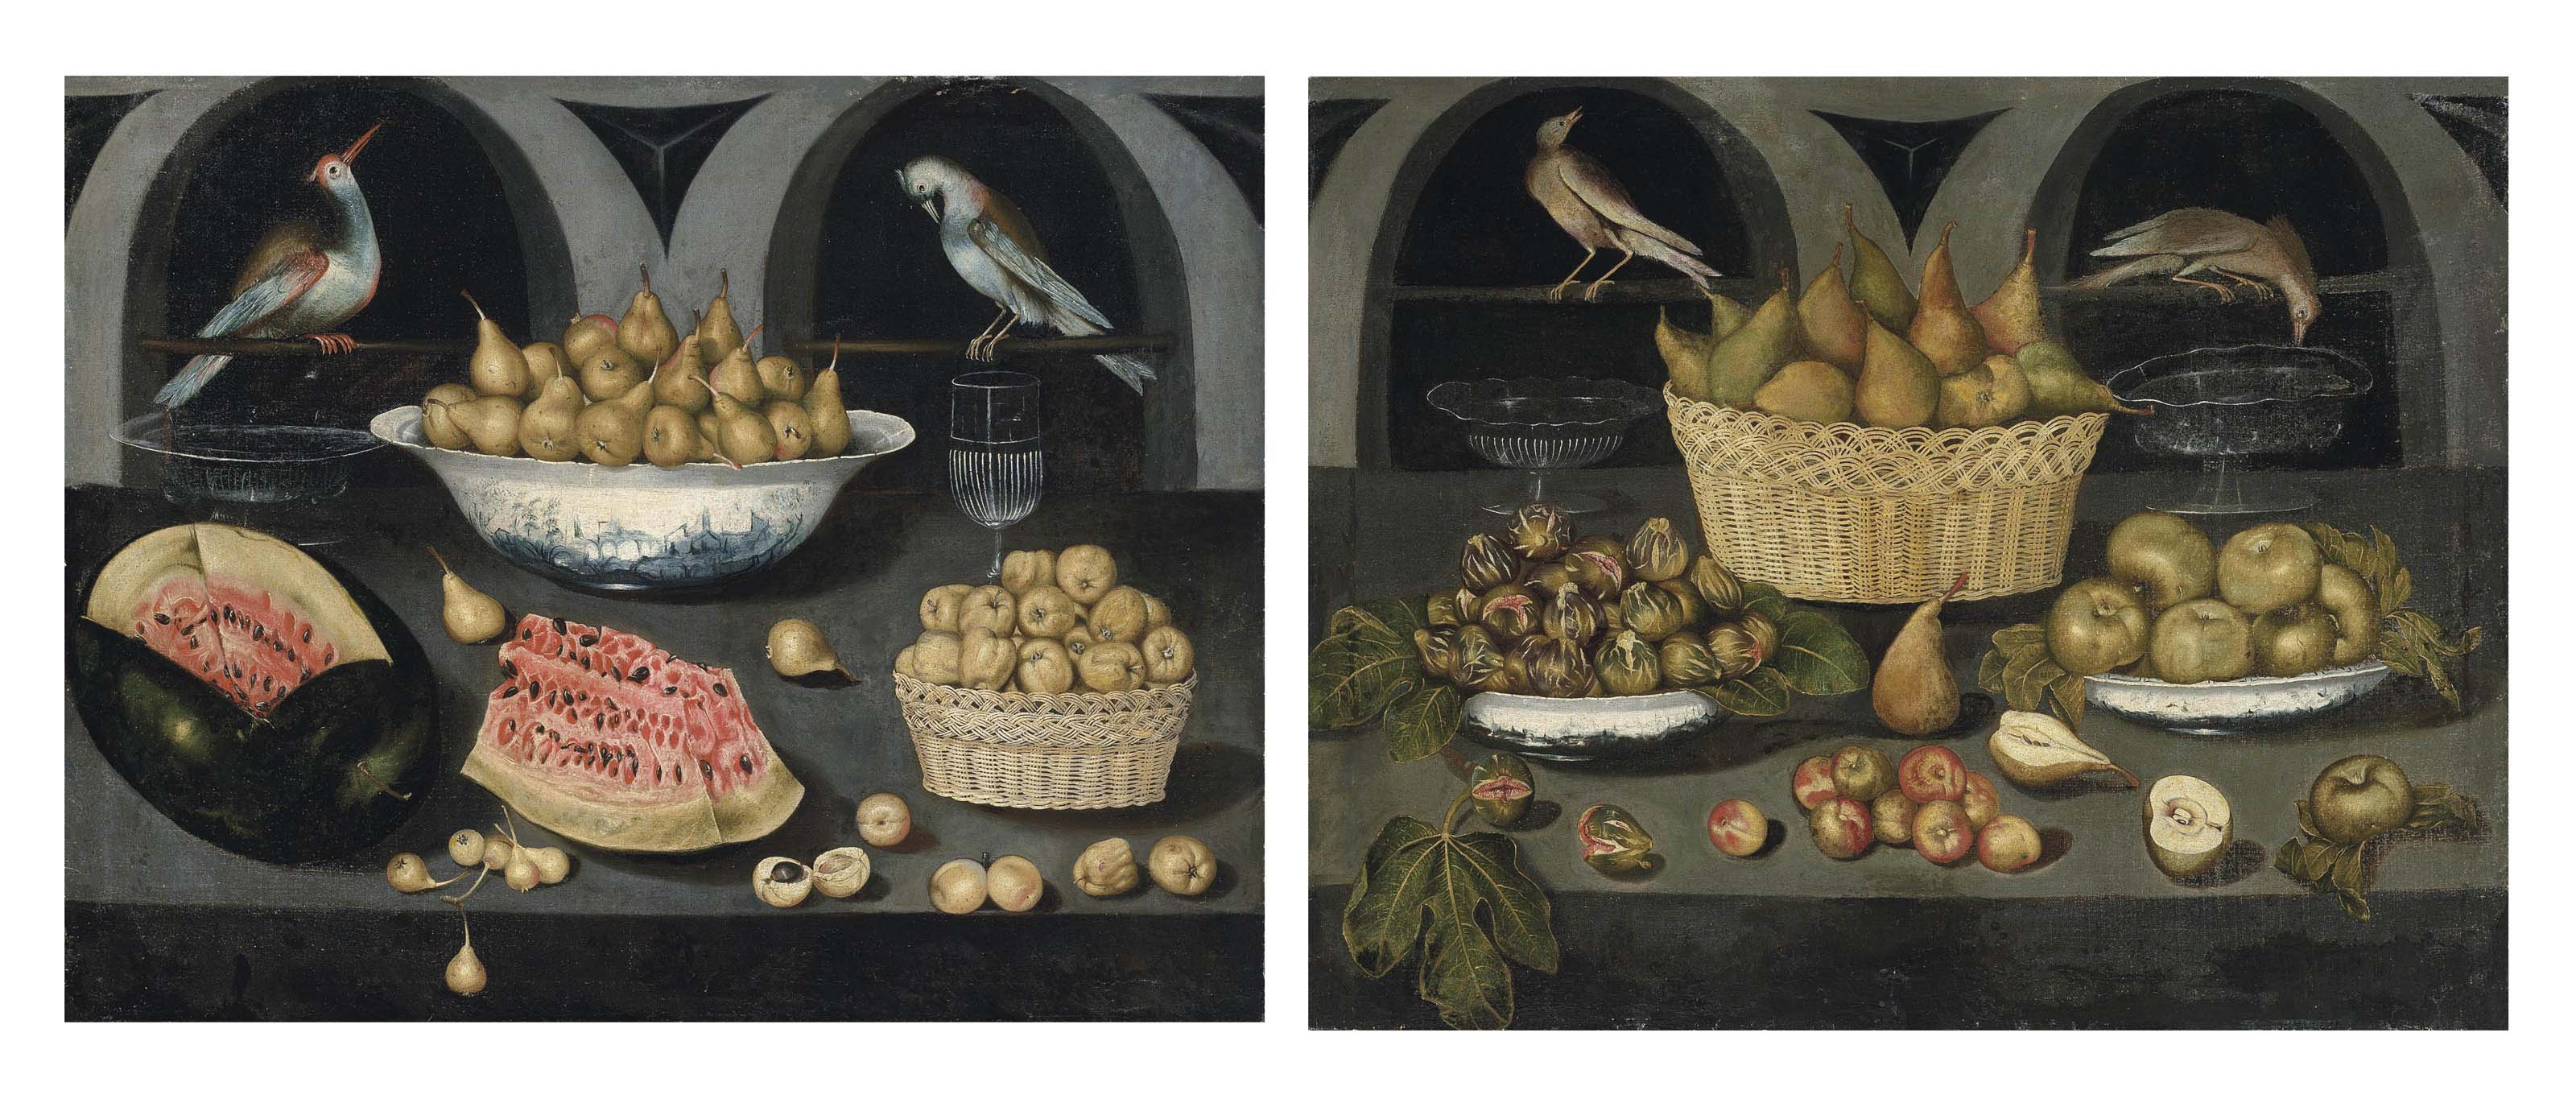 An open watermelon, pears in a Chinese porcelain bowl, apples in a wicker basket, apricots and glassware, on a stone ledge, arches beyond with two exotic birds; and Pears in a wicker basket, figs and apples in Chinese porcelain bowls, with further pears, figs, apples and glassware, on a stone ledge, arches beyond with two birds